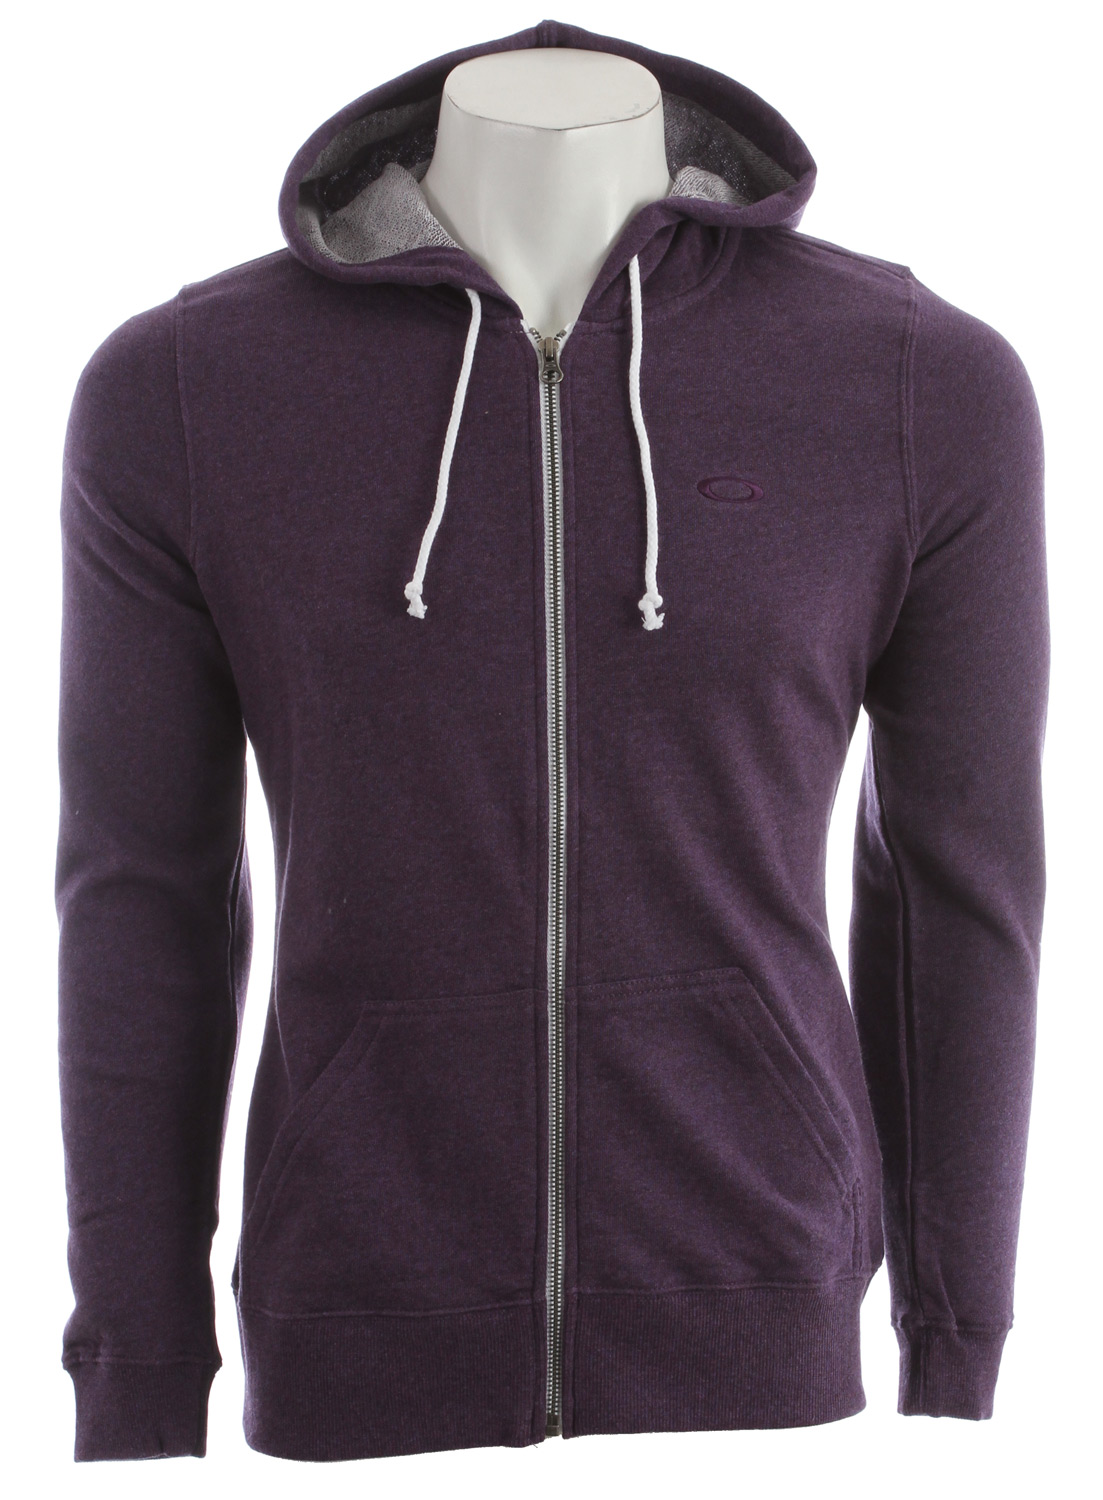 "Our lightest French terry cotton yet, whipped to perfection in a classic zip front hoodie with a had-it-forever vintage feel. The kind of cozy layer destined for nonstop wear. 27"" hpsKey Features of the Oakley Coastline Hoodie: 78% cotton/22% polyester - $54.00"